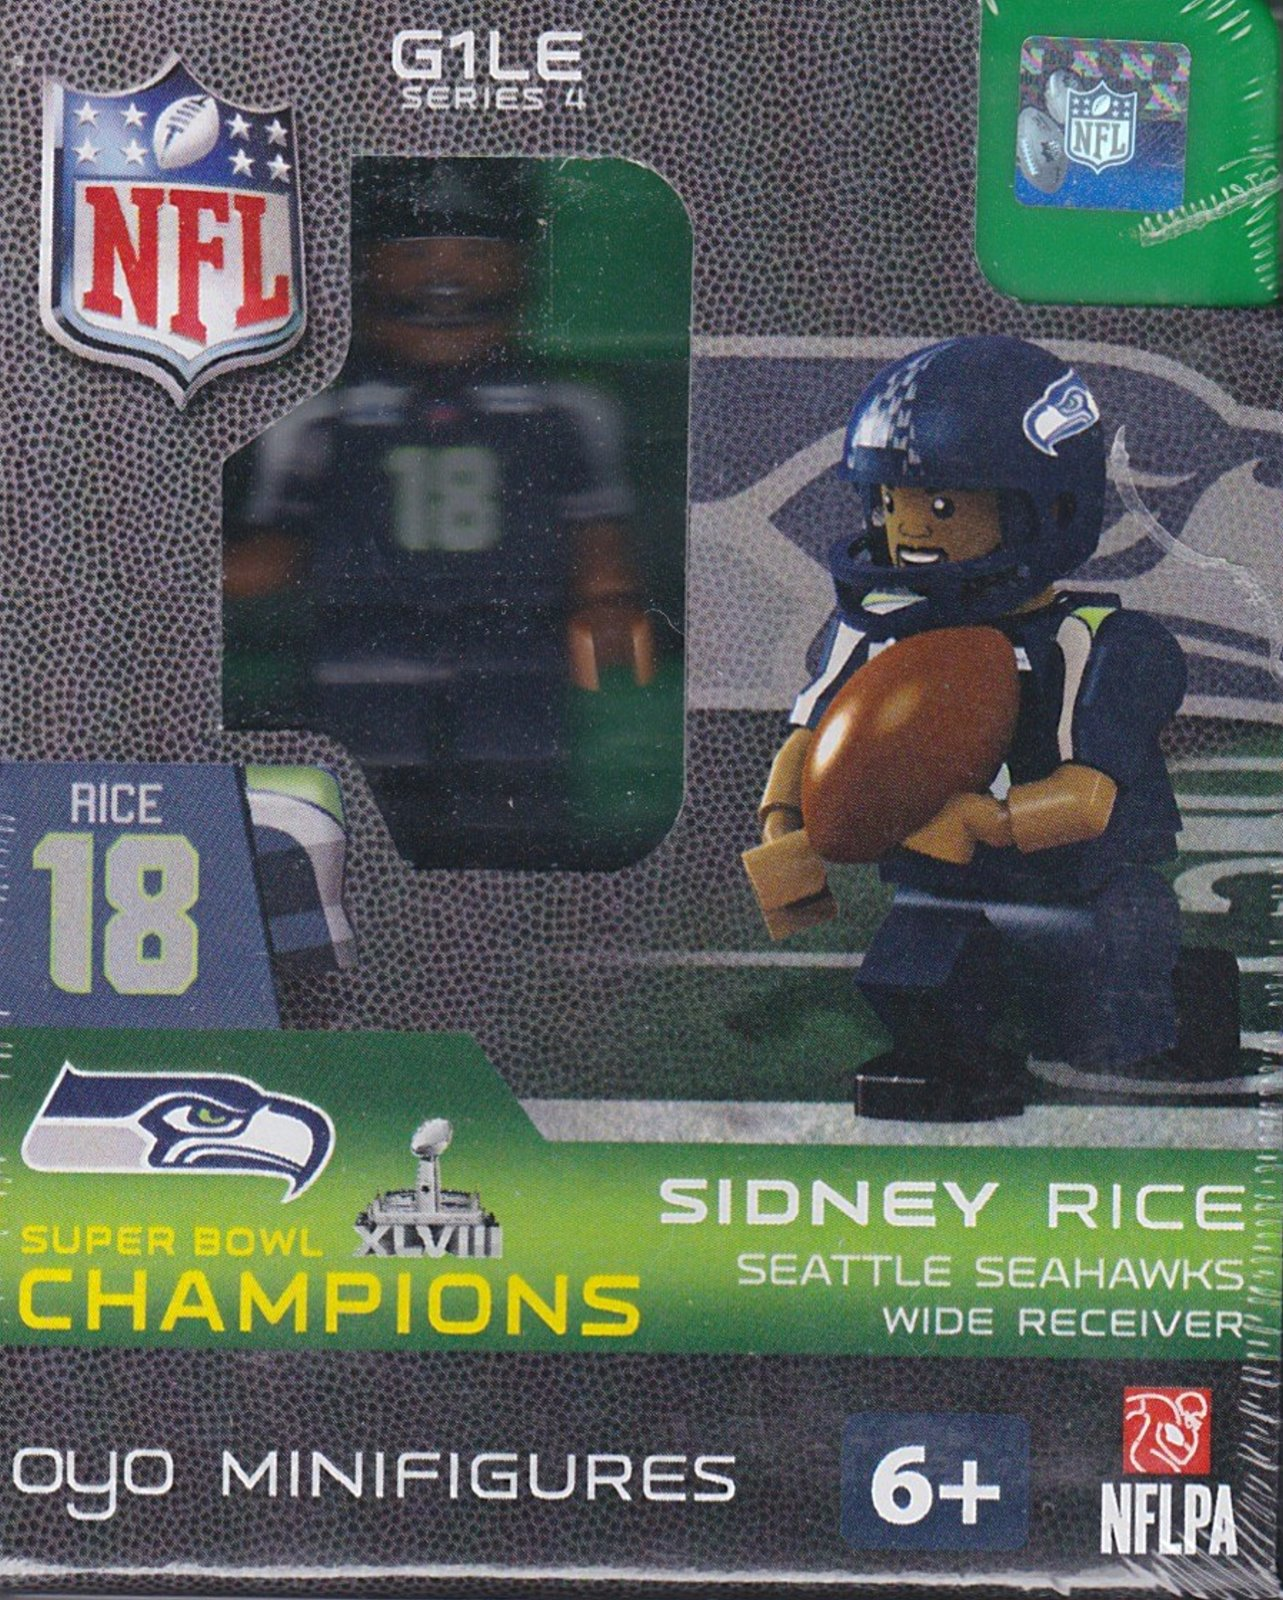 Sidney Rice Seattle Seahawks Super Bowl 48 Champions NFL OYO G1LE Series 4